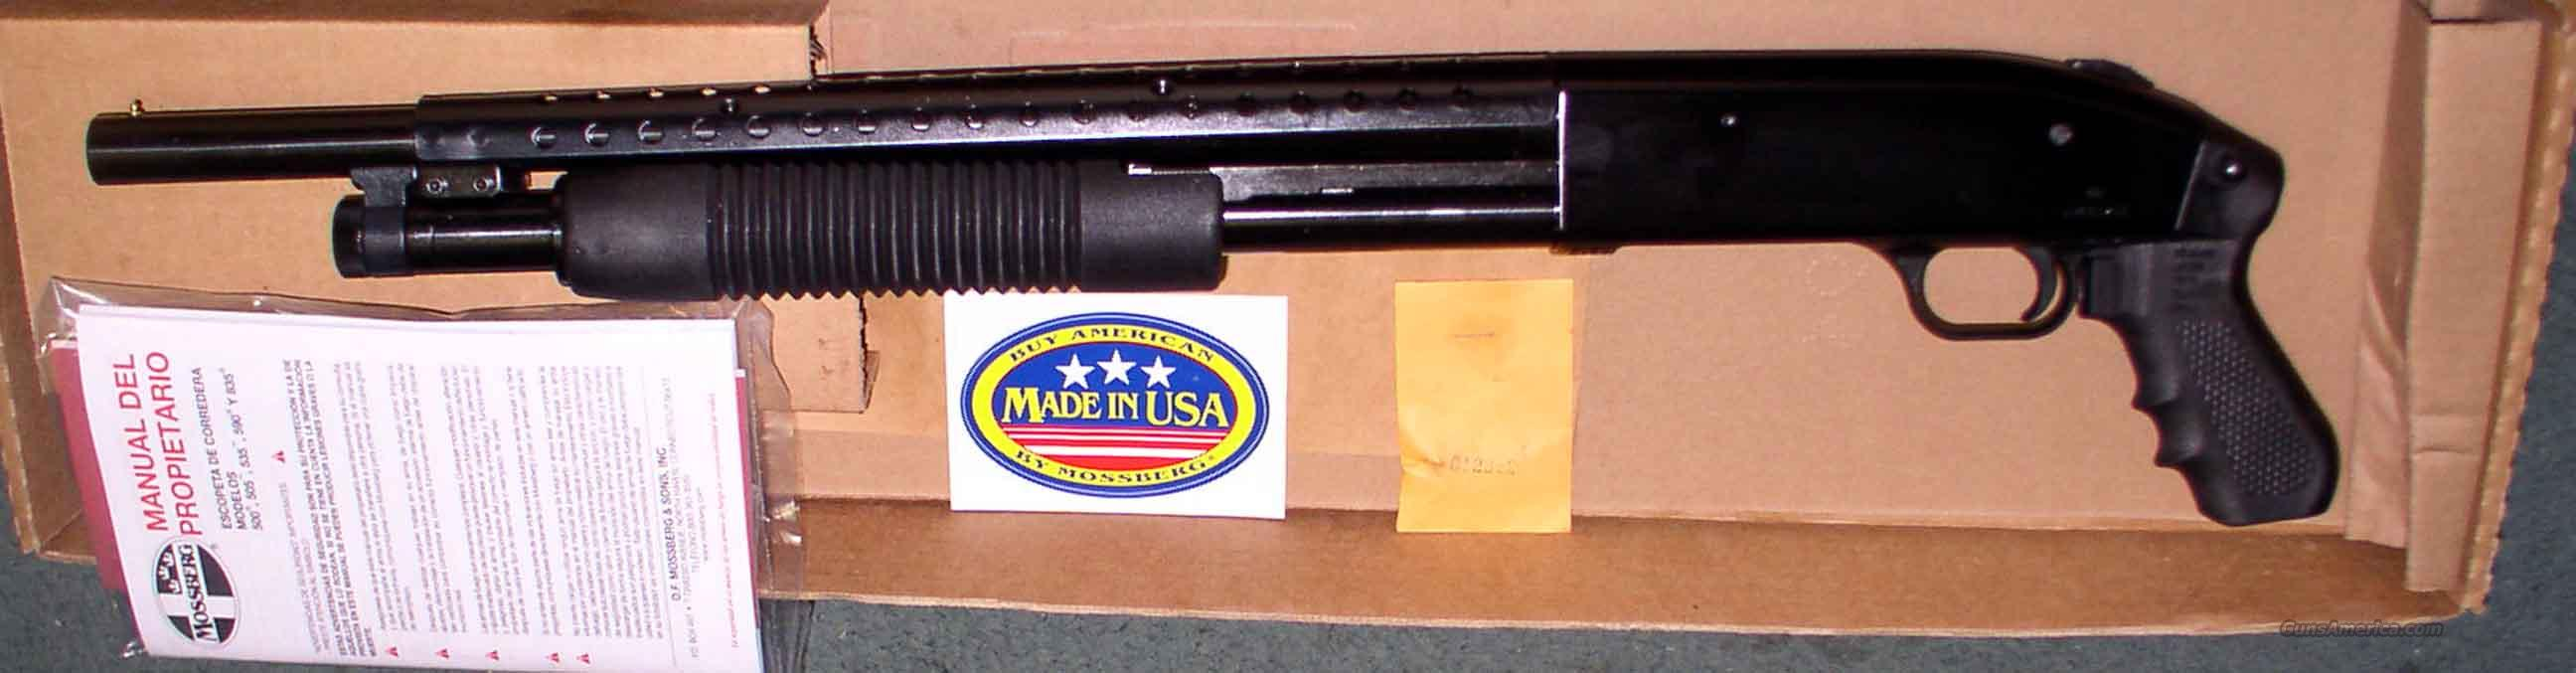 MOSSBERG 500 PUMP 12 GA PISTOL GRIP  Guns > Shotguns > Mossberg Shotguns > Pump > Tactical